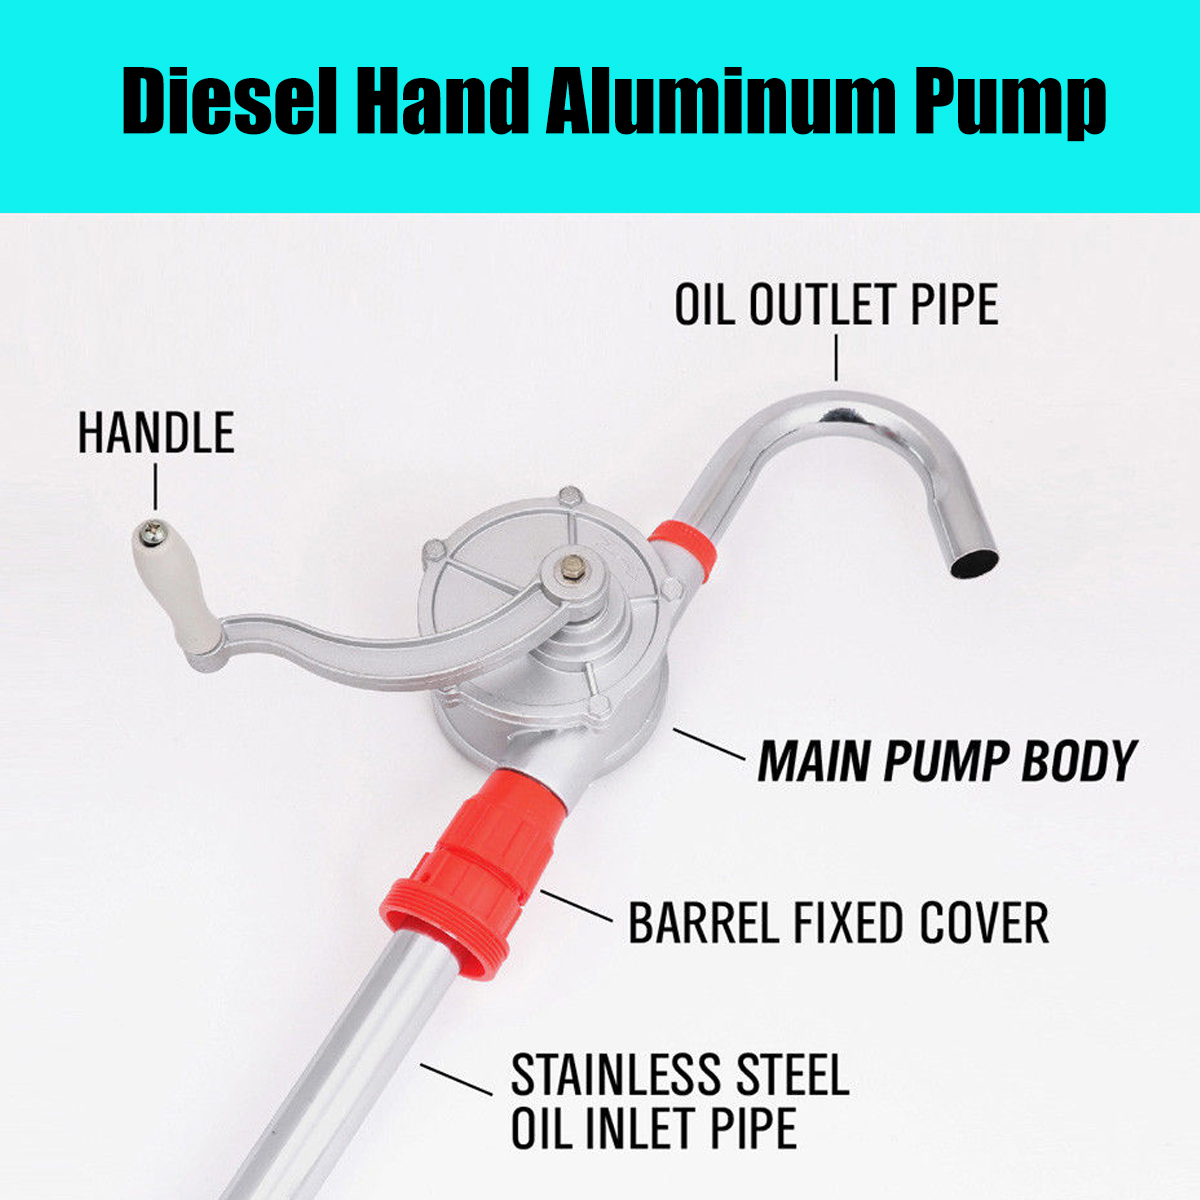 Universal Handheld Pump Battery Operated Liquid Transfer Siphon Hose Electric Oil Pumping Pipe Fish Tank Water Changer Auto Easy To Lubricate Fuel Supply System